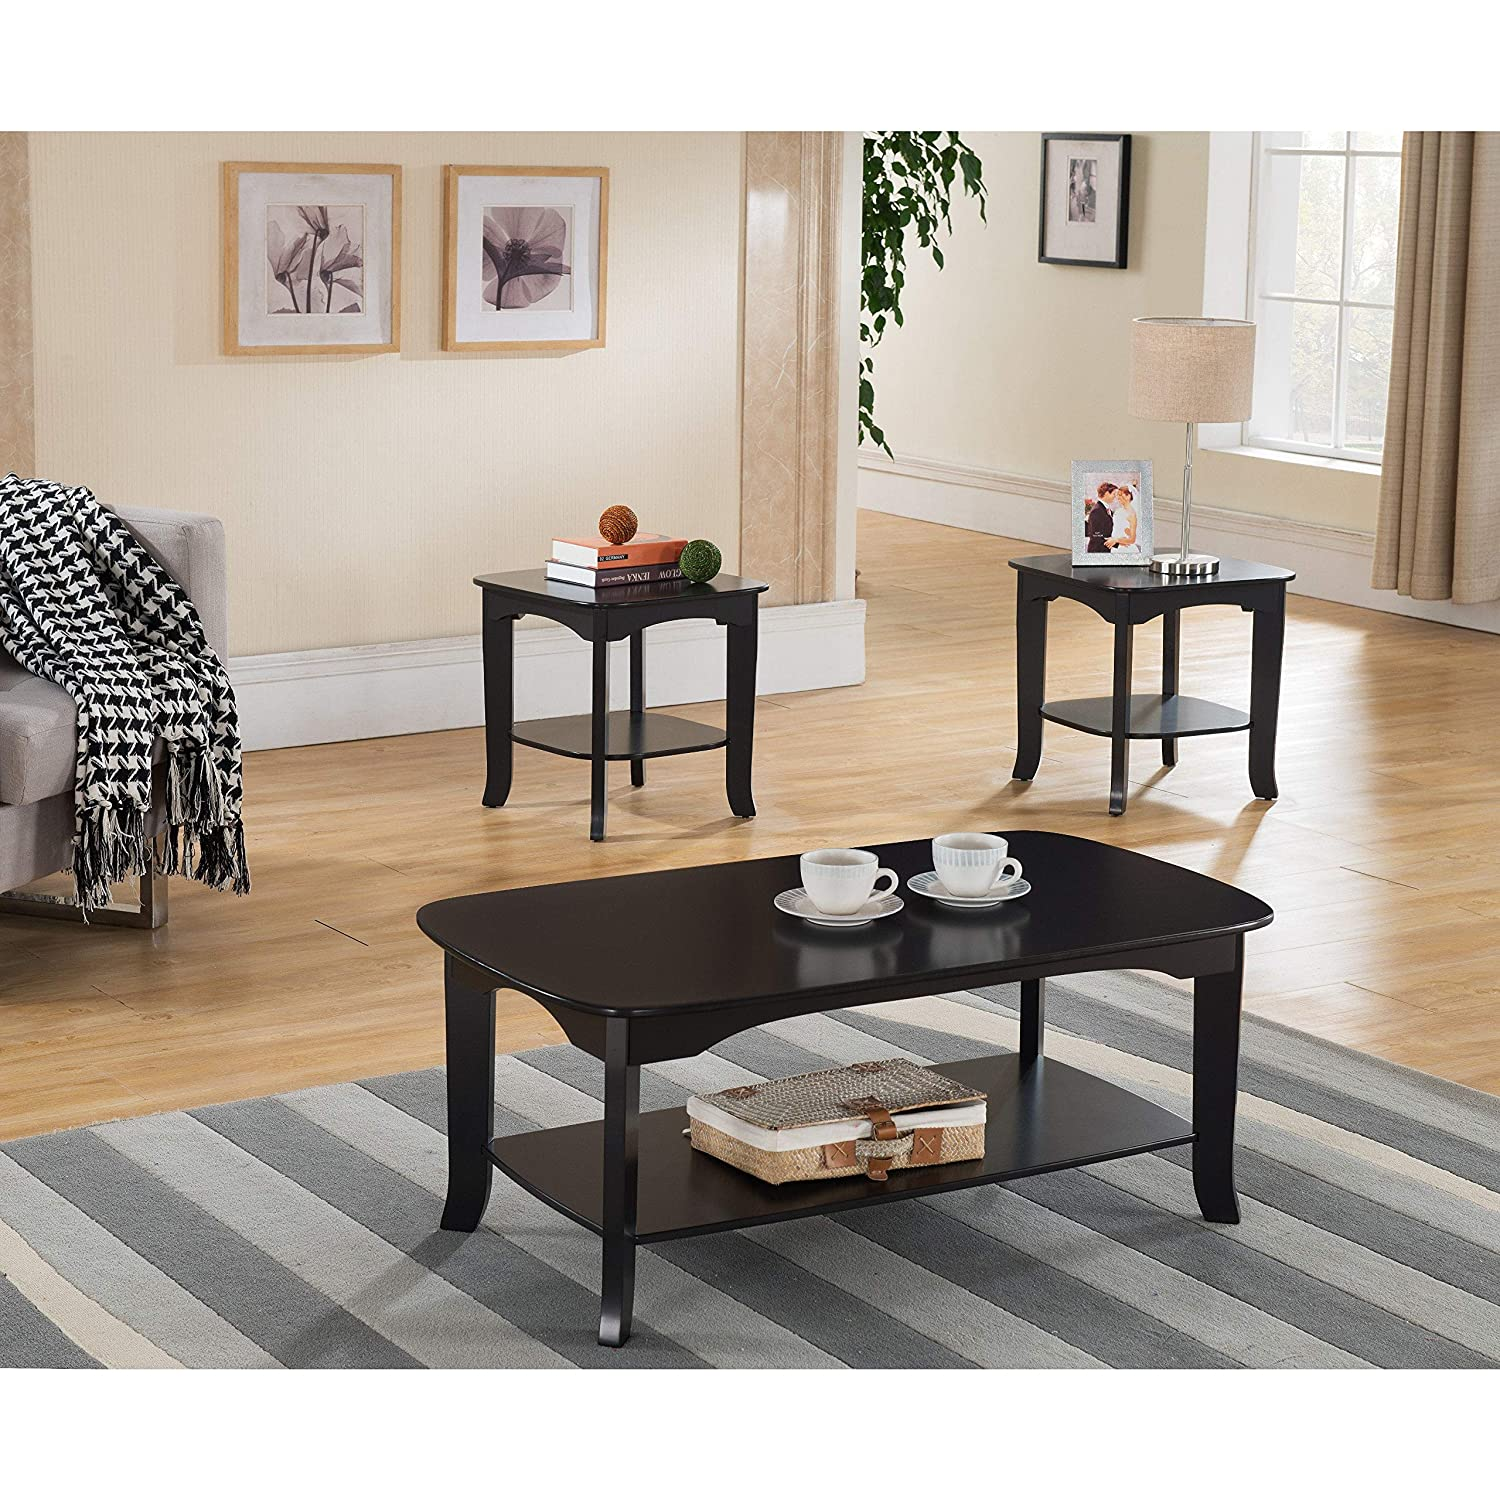 K and B Furniture Co Inc Espresso Wood 3-Piece Occasional Table Set